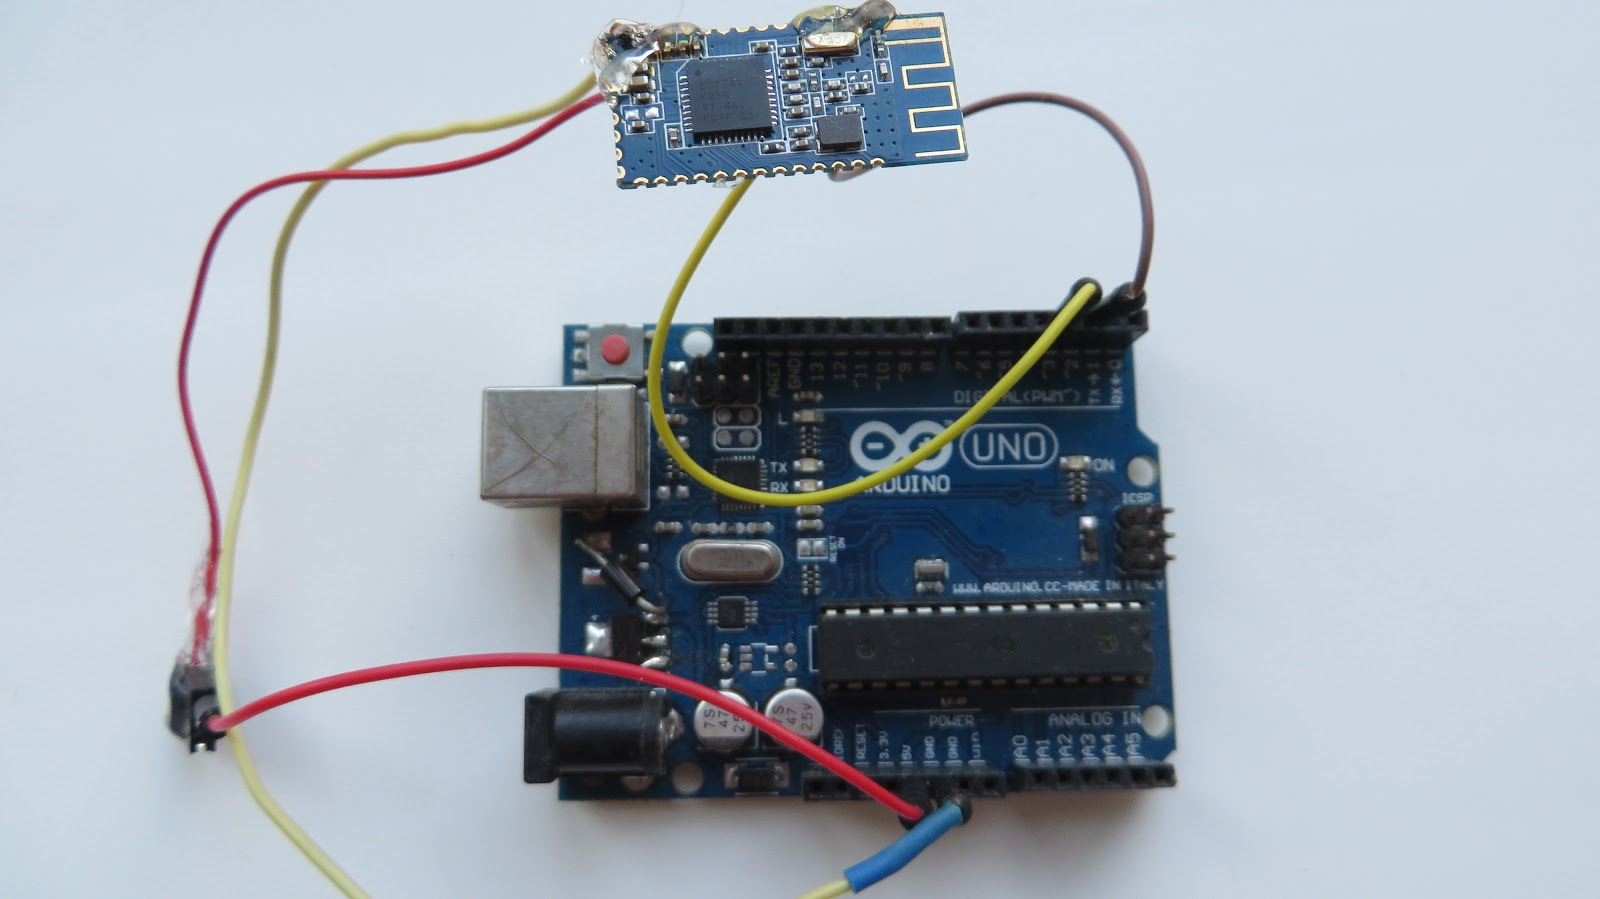 Uart Bridge With Hm 10 Communication Between Microcontroller And How To Establish A Pc Micro Controller Usart 33v Converted Uno